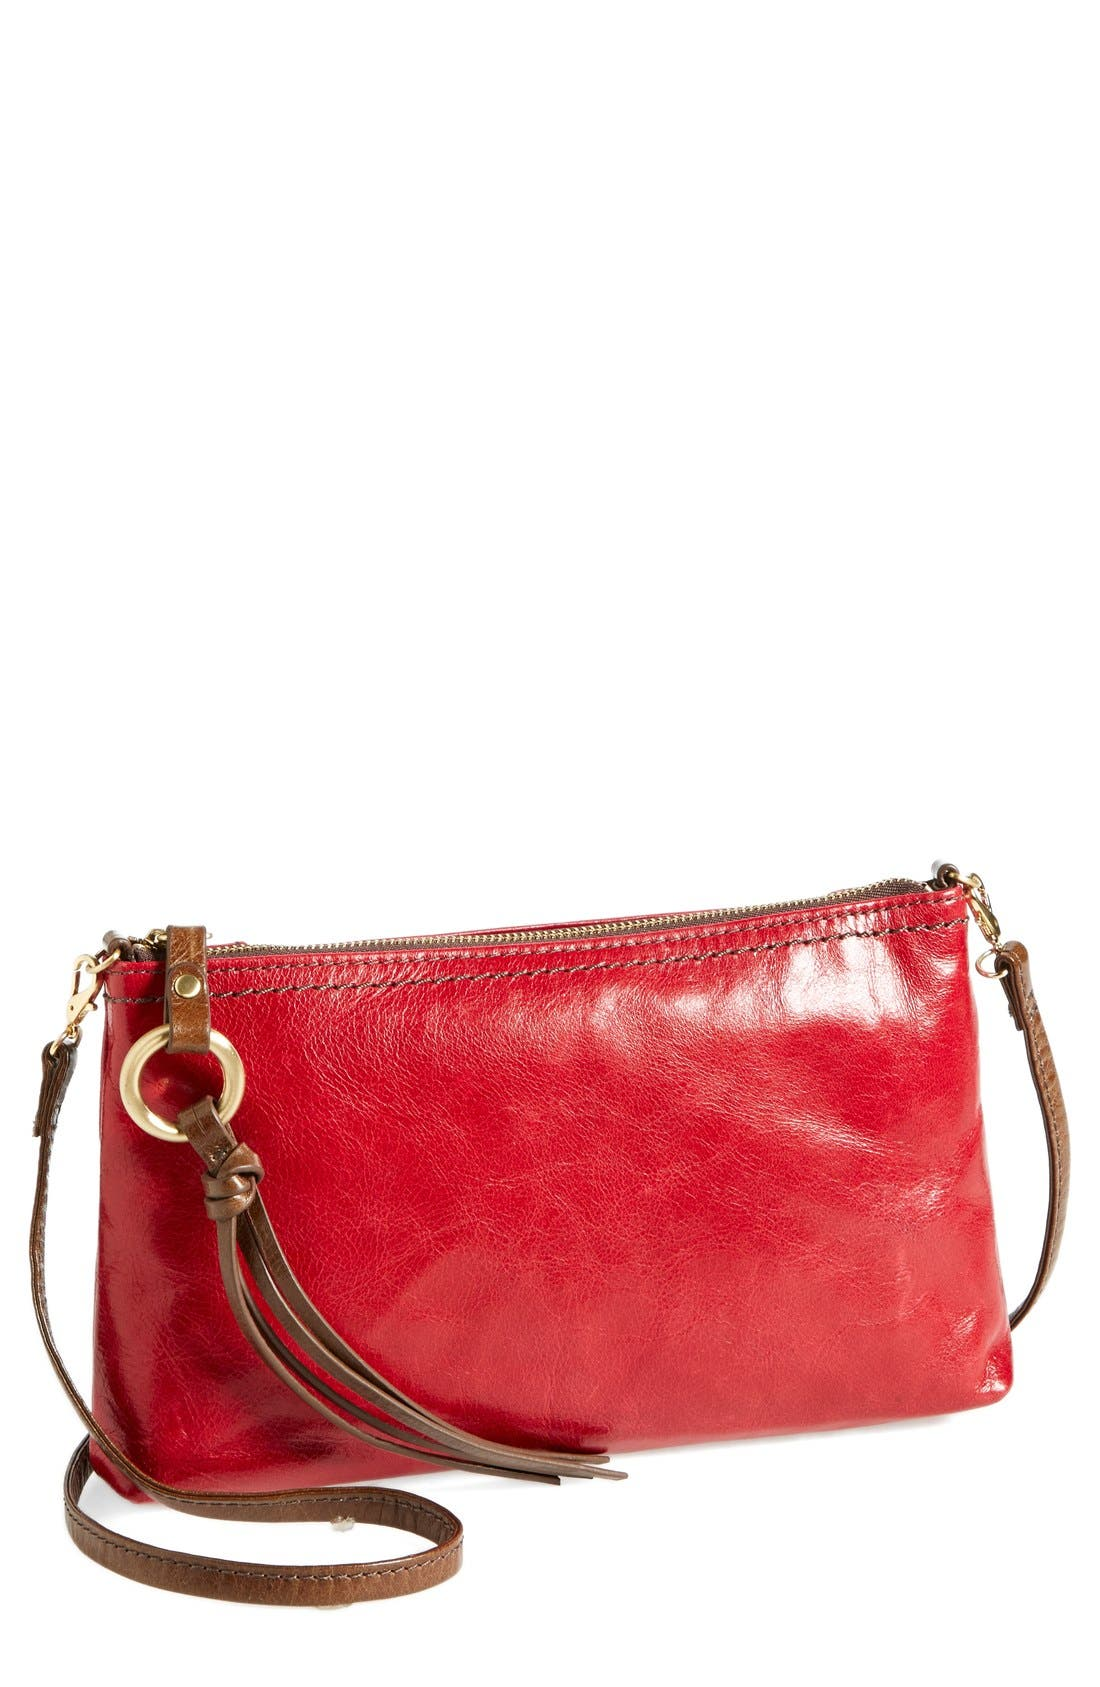 'Darcy' Leather Crossbody Bag,                             Main thumbnail 24, color,